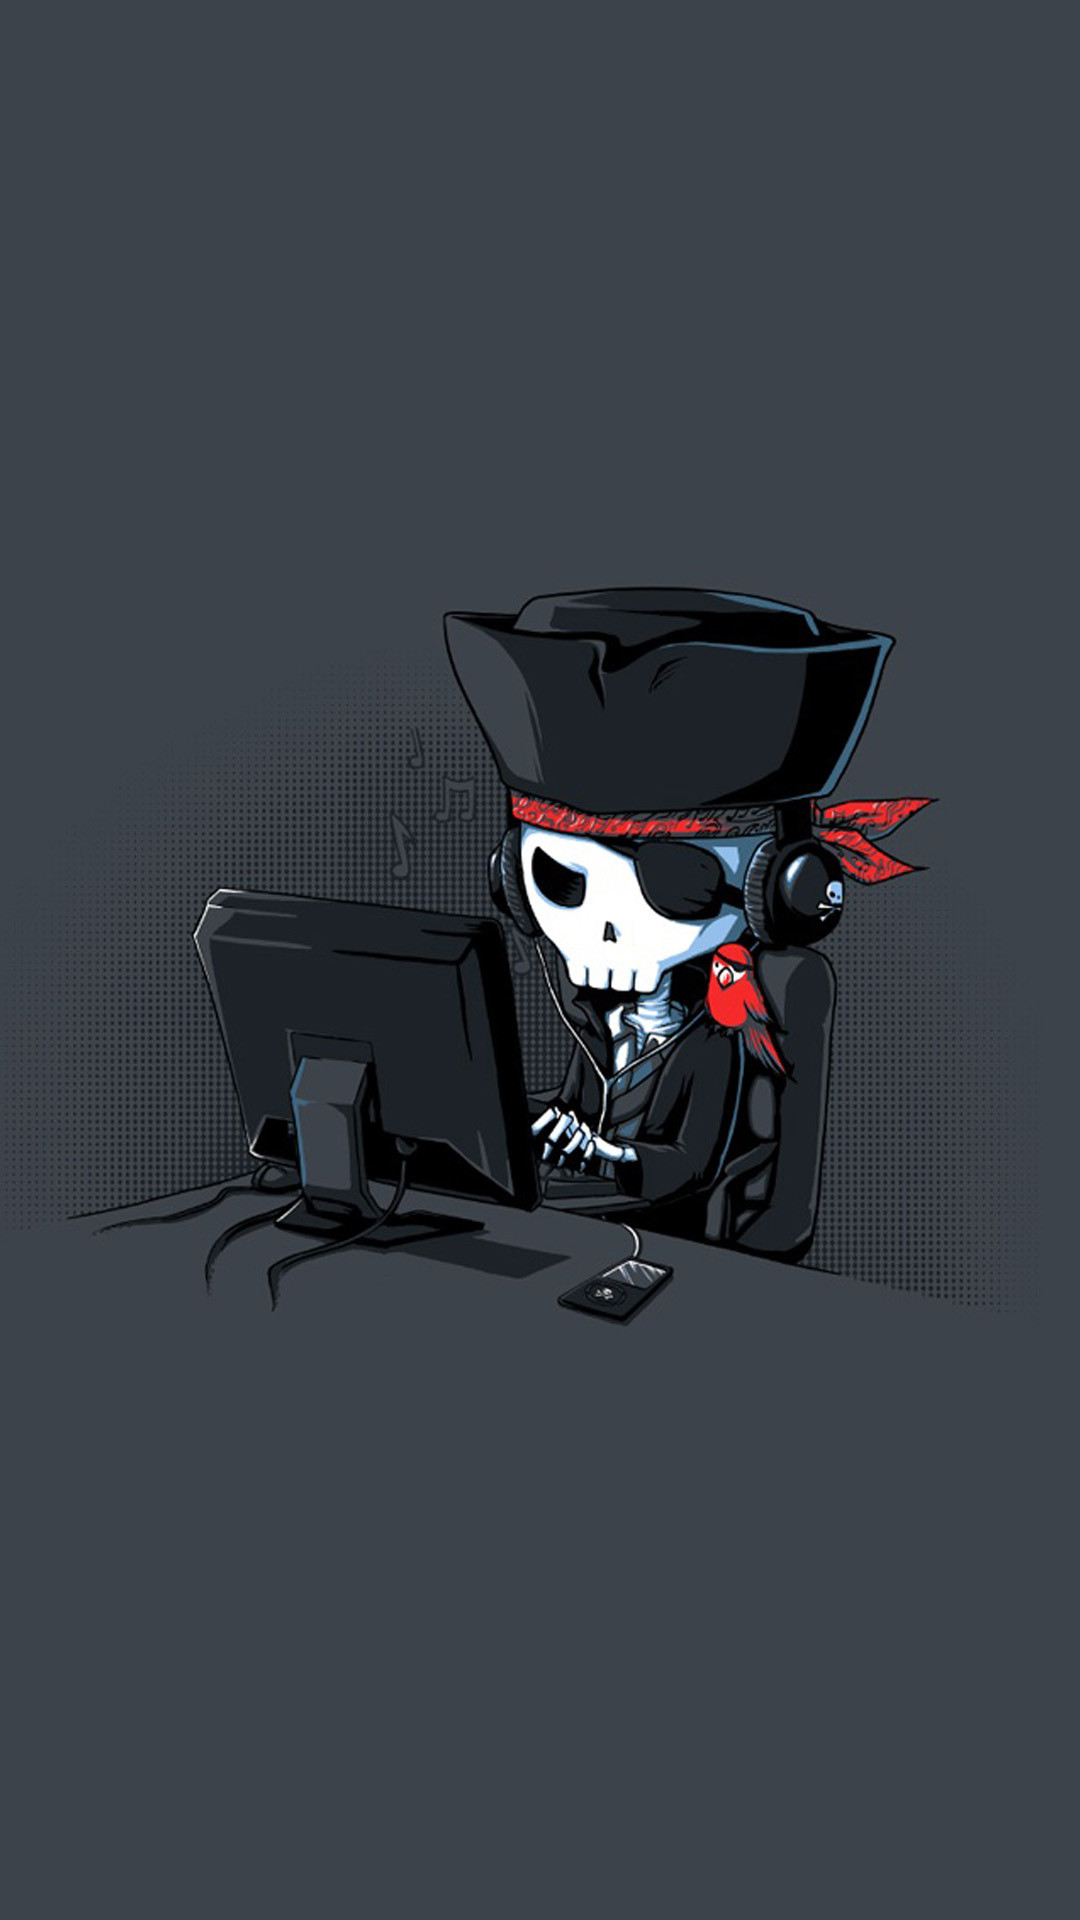 Funny wallpapers for laptop 60 images - Funny iphone wallpaper ...